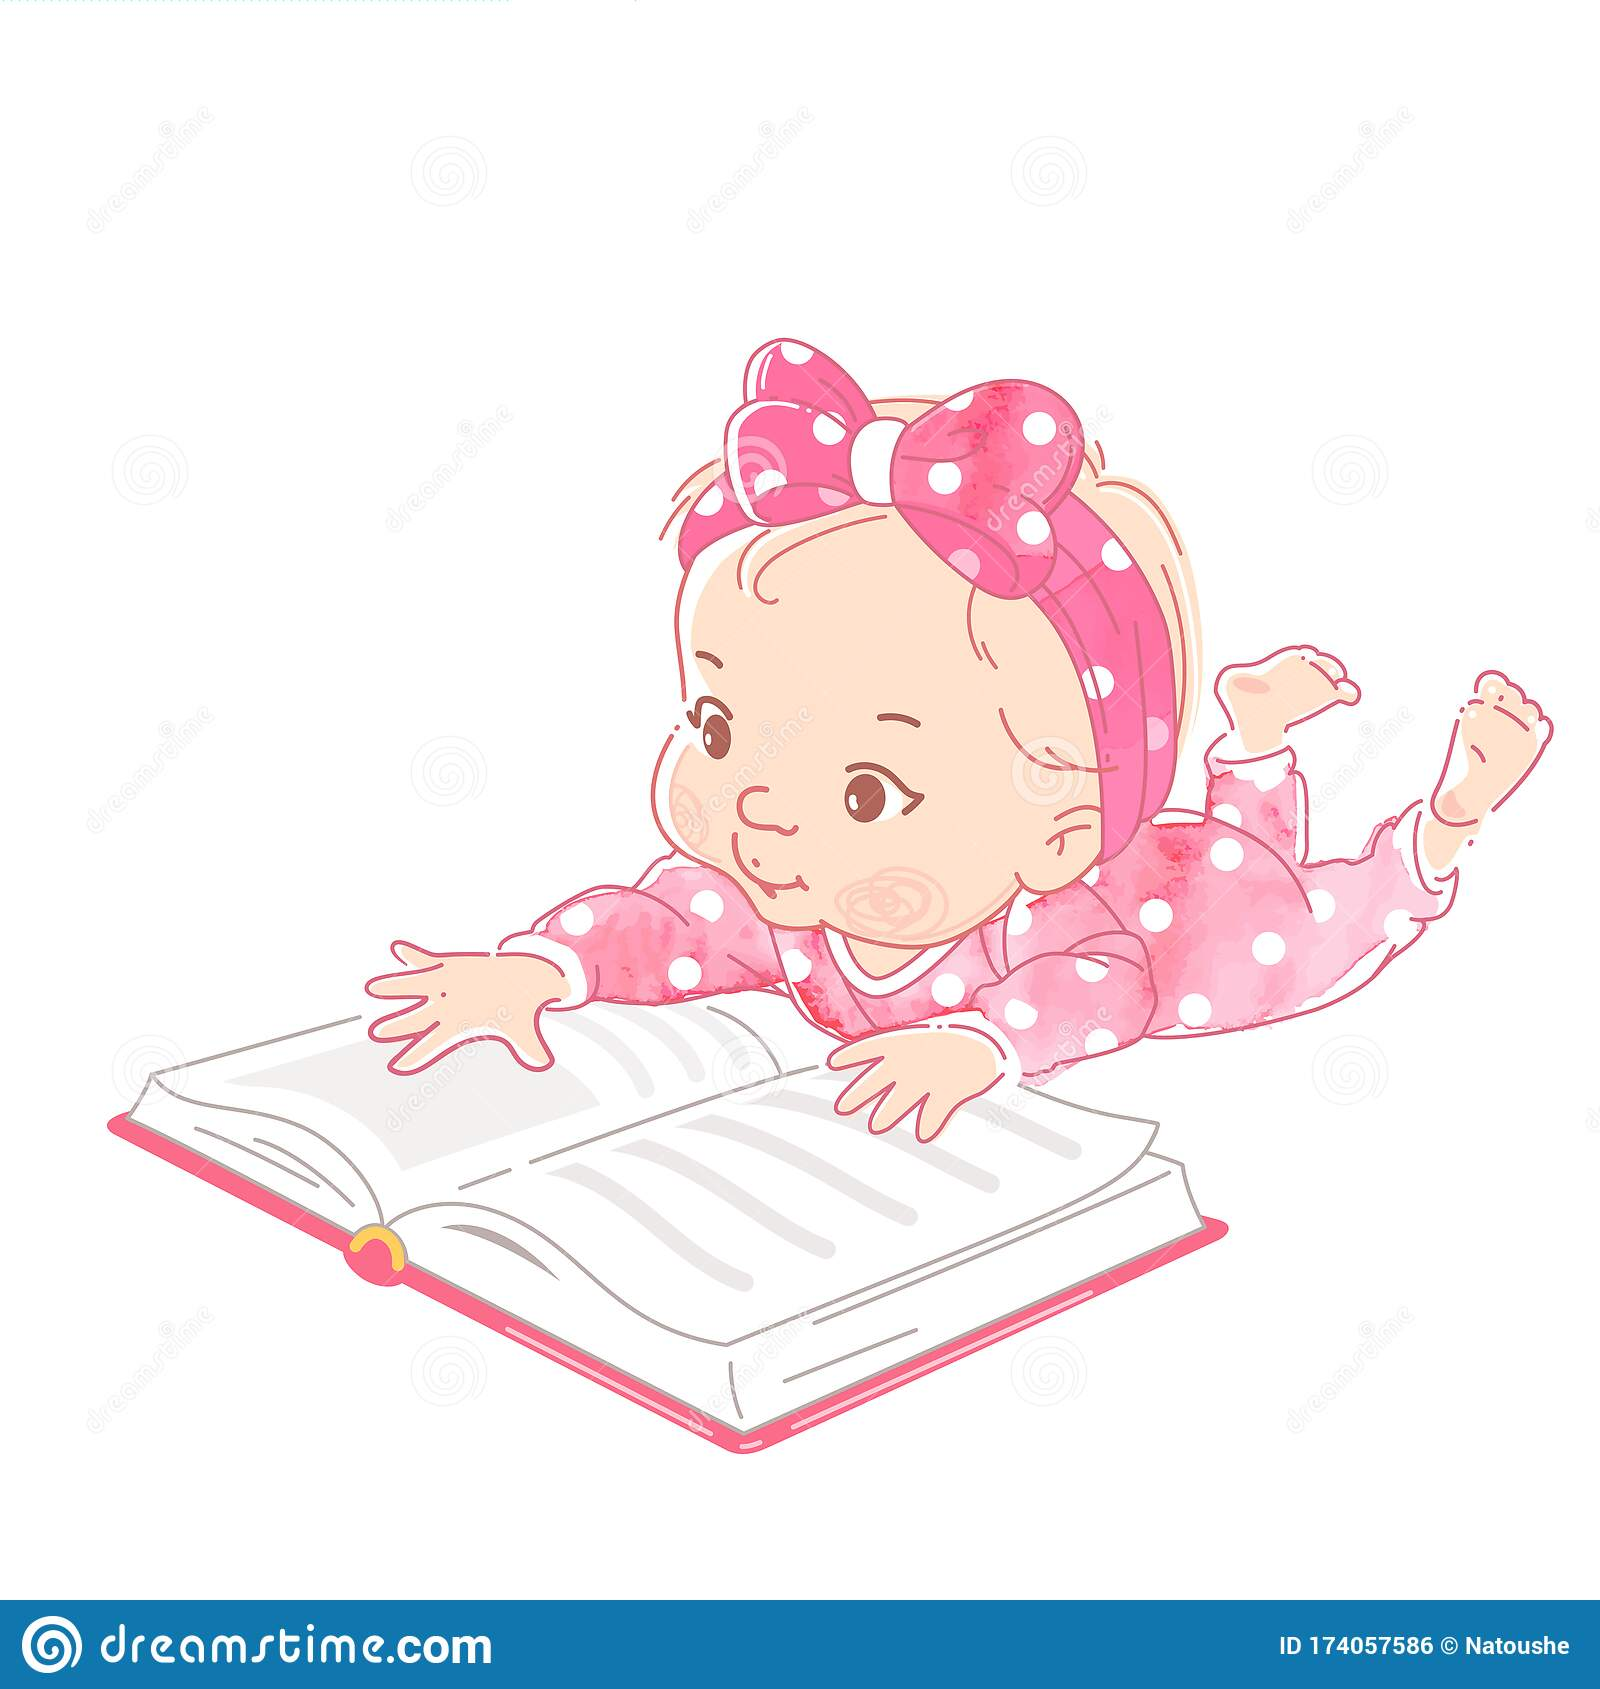 Baby Stomach Problem Stock Illustrations – 107 Baby Stomach Problem Stock  Illustrations, Vectors & Clipart - Dreamstime